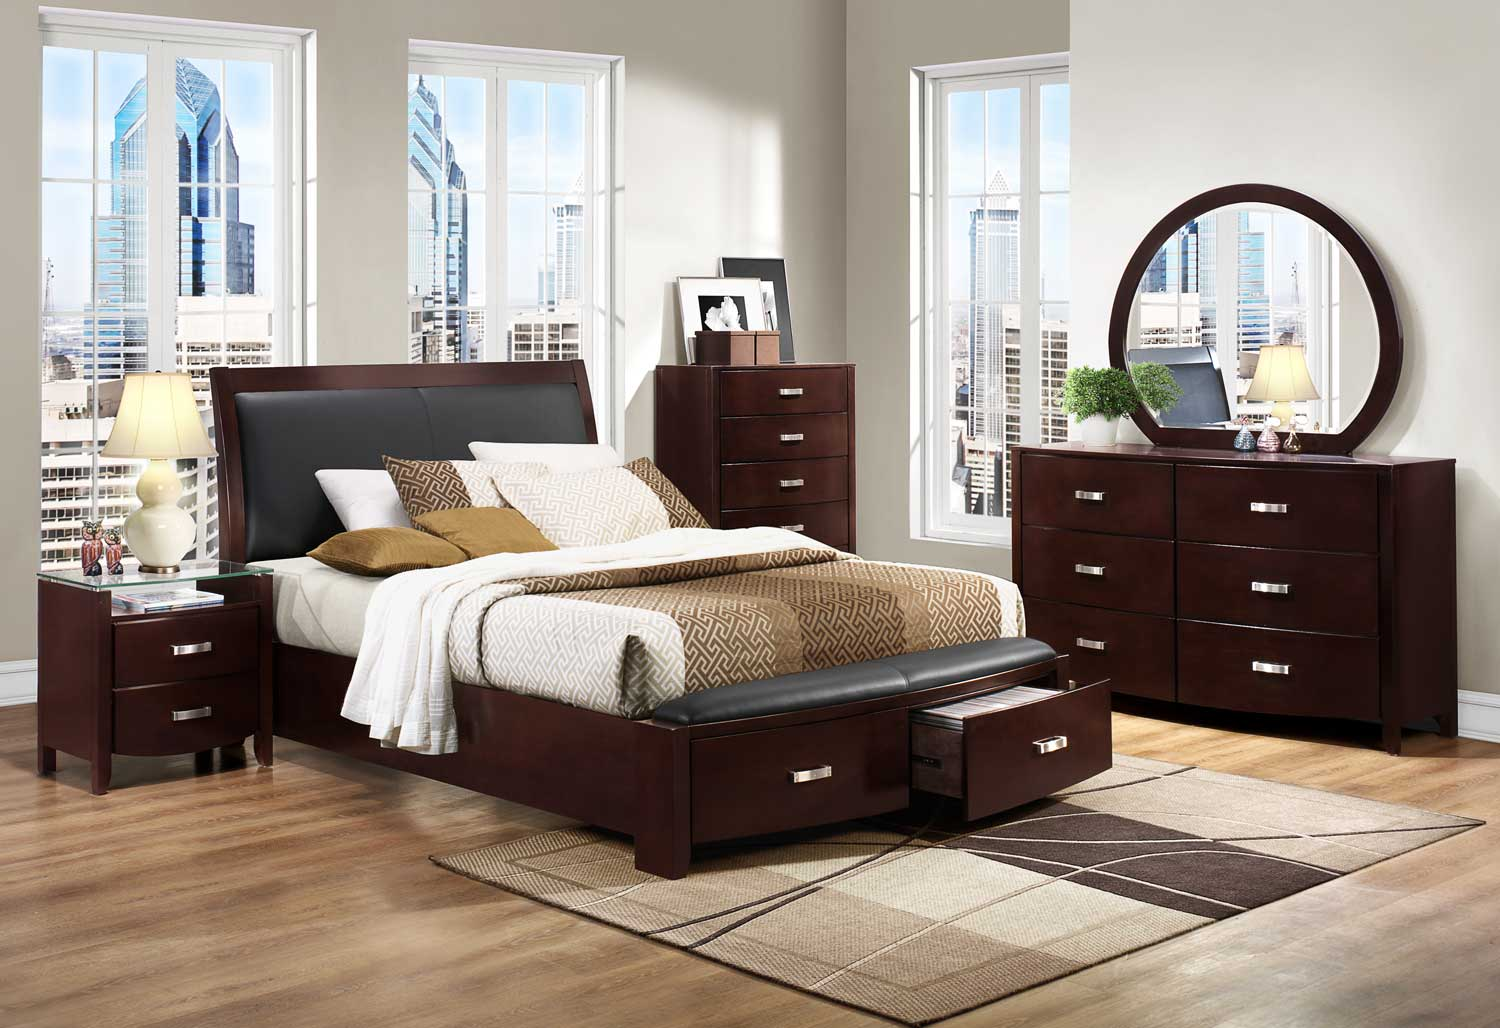 Homelegance lyric platform bedroom set dark espresso for Bed and bedroom sets